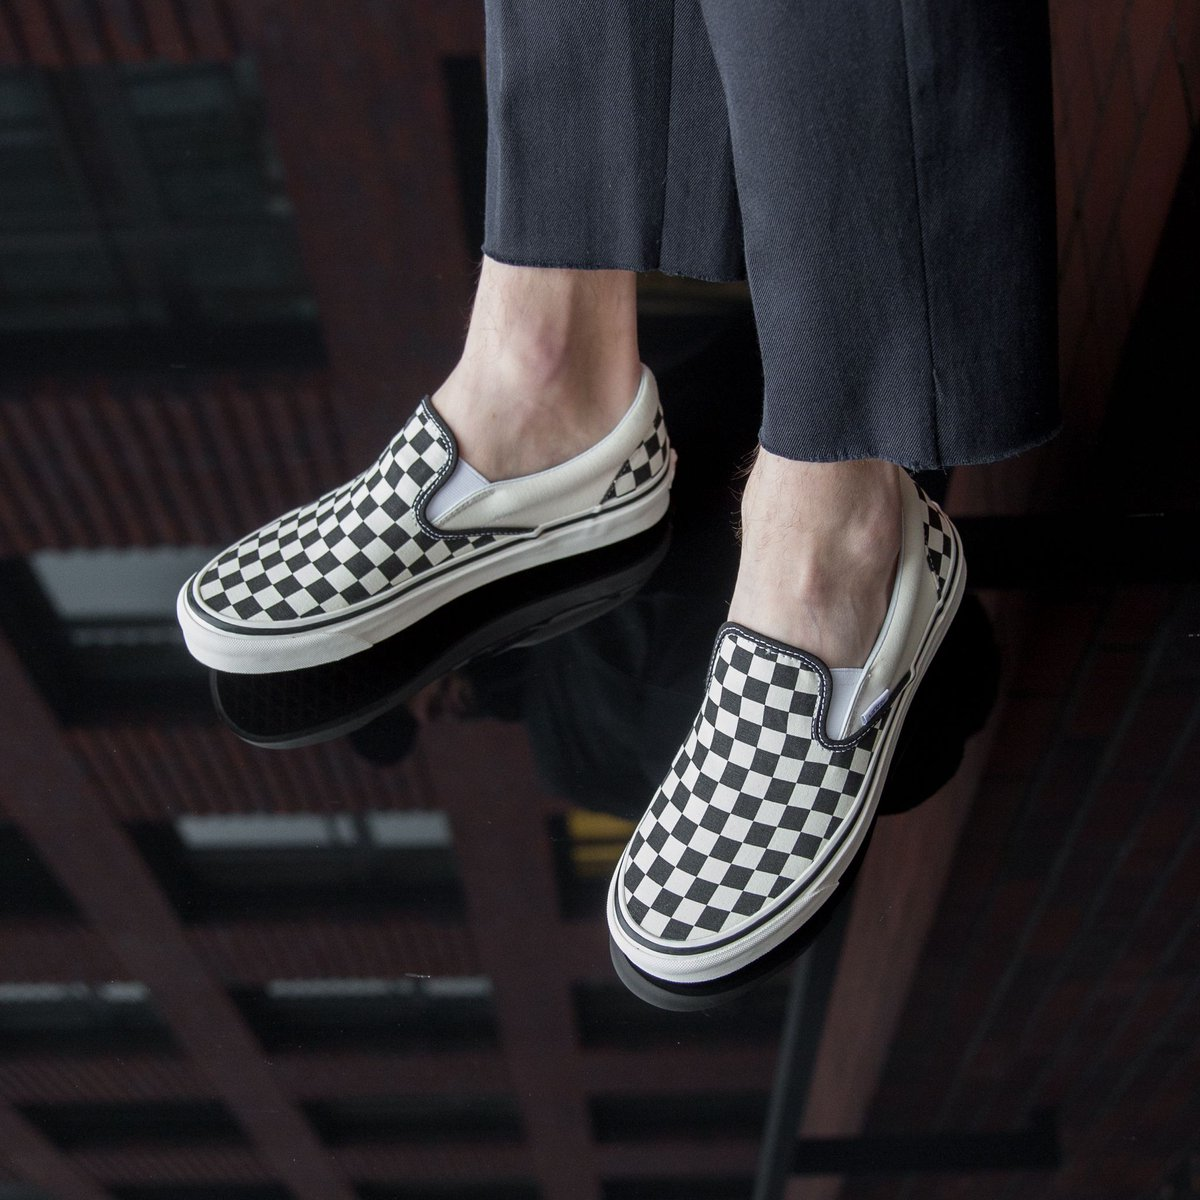 196e263c968 NEW IN ! Vans UA Classic Slip-On 98 DX - Checkerboard Black White SHOP HERE    http   bit.ly 2FlX9PK pic.twitter.com P4tilqUwFs